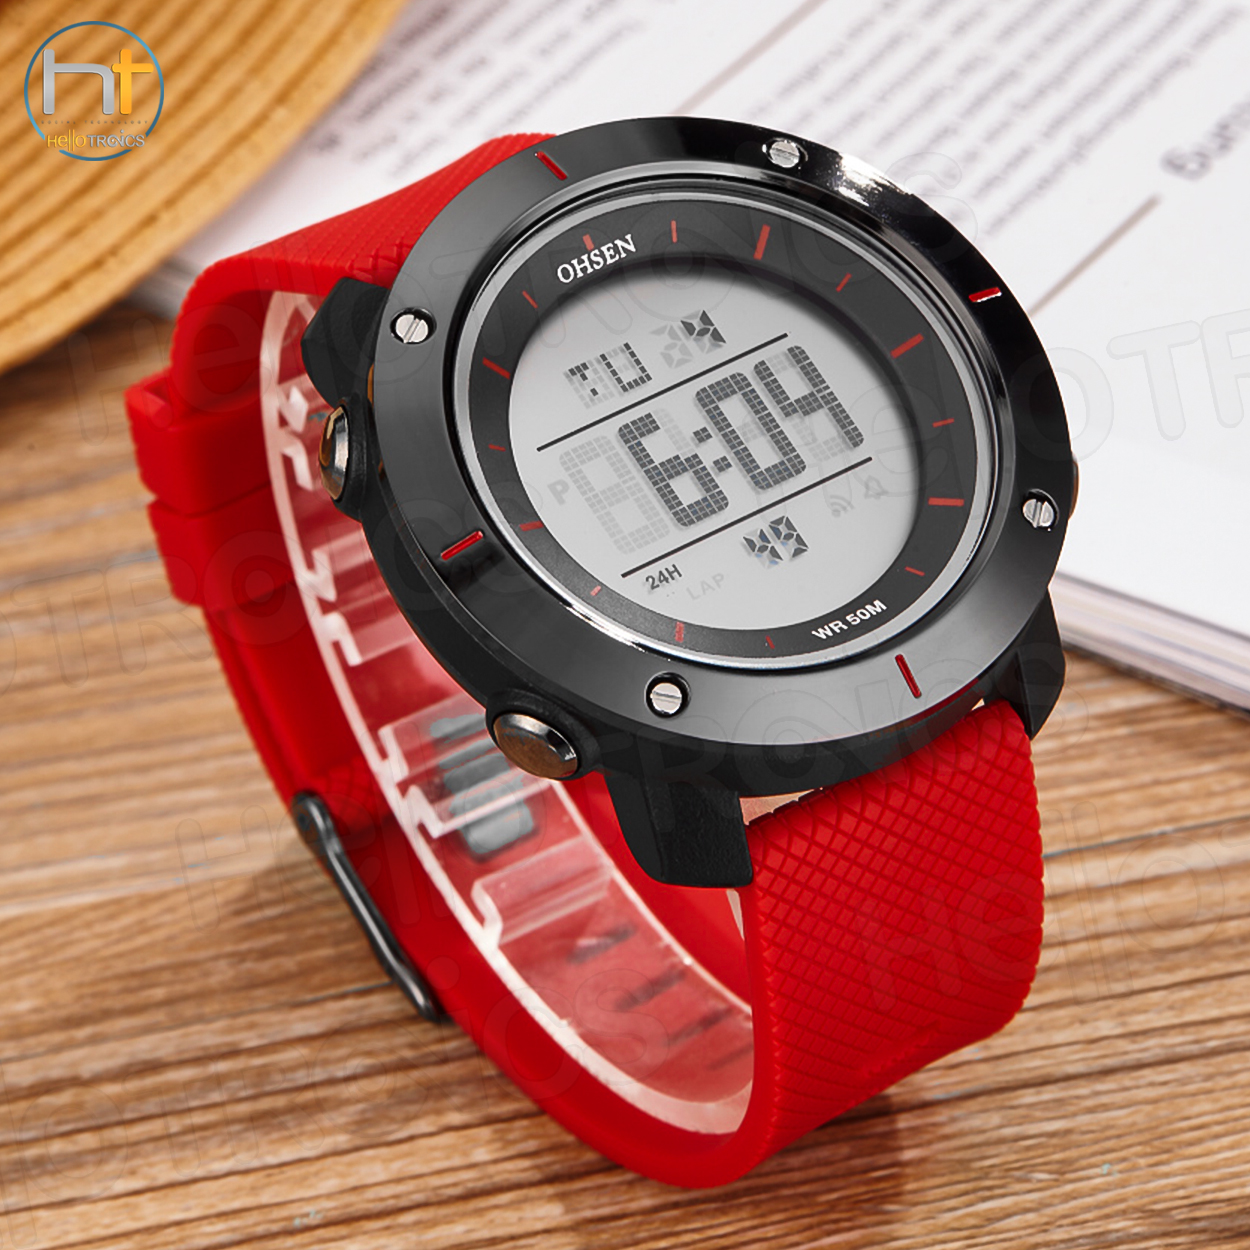 Ohsen 1611 Mens Digital Time Sport Day Date Quartz Silicone Wrist Watch (Red) - thumbnail